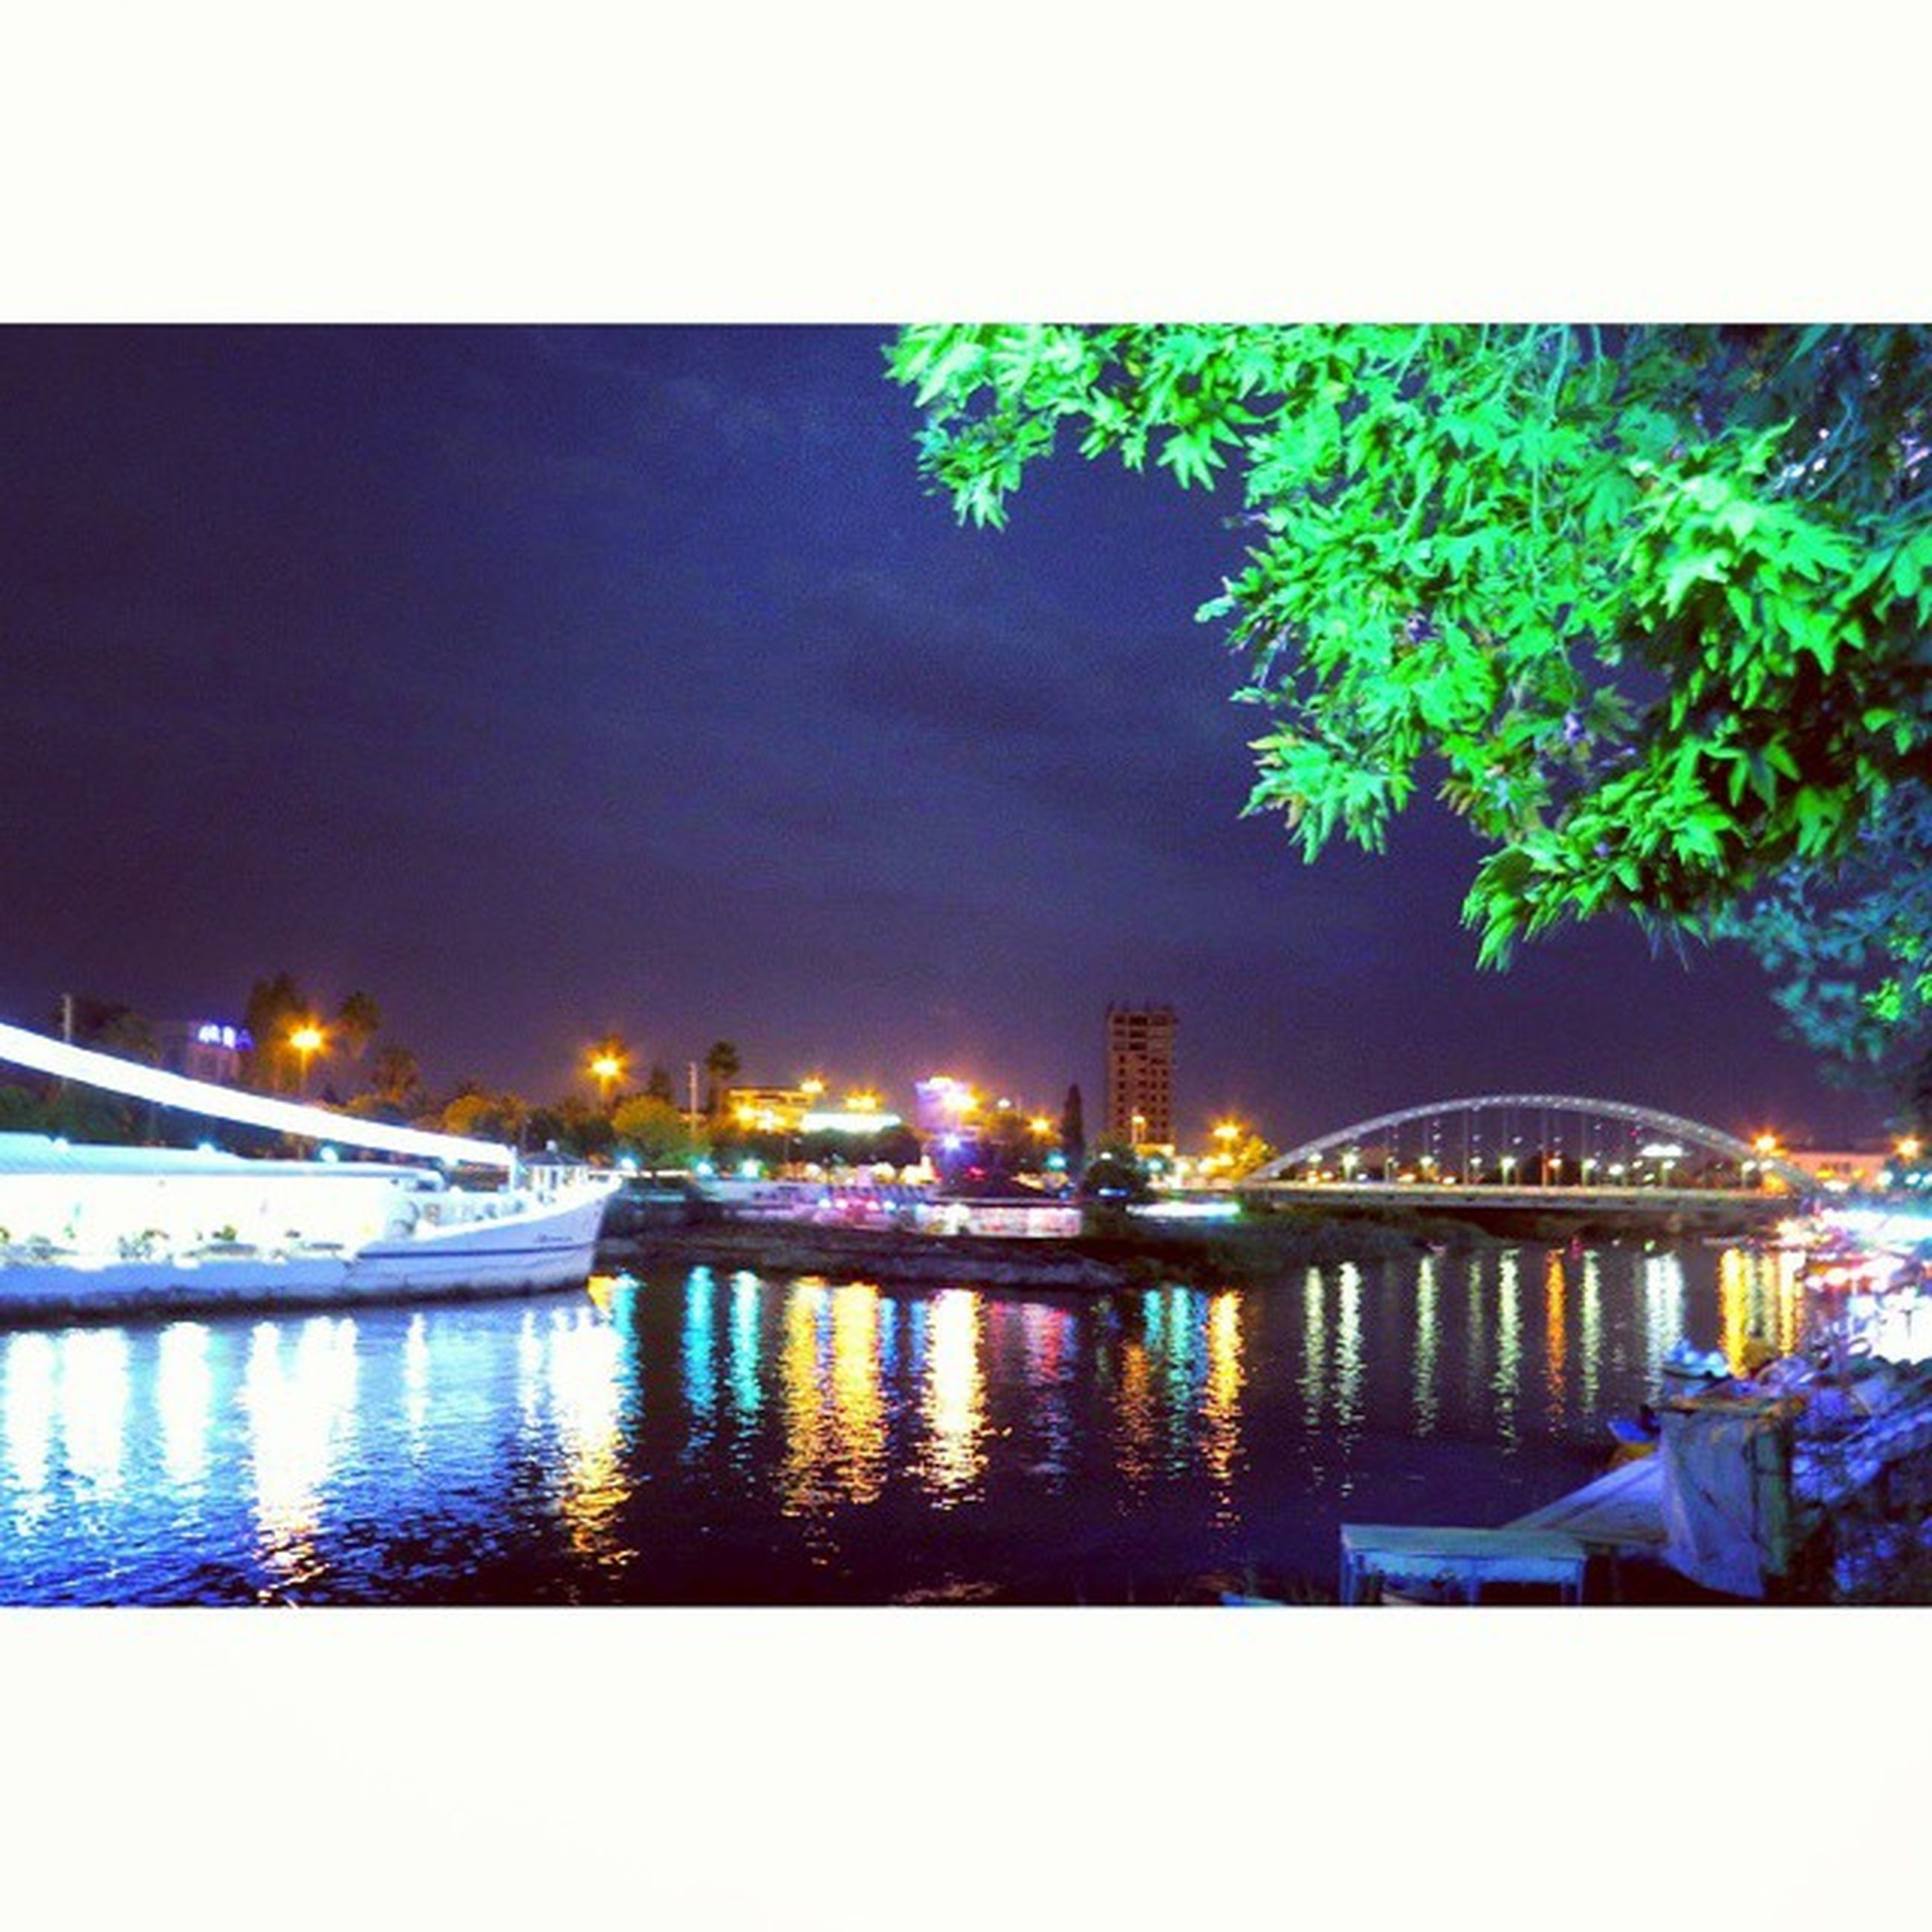 illuminated, water, night, reflection, architecture, built structure, building exterior, river, transfer print, city, waterfront, auto post production filter, nautical vessel, transportation, sky, lake, lighting equipment, boat, bridge - man made structure, moored